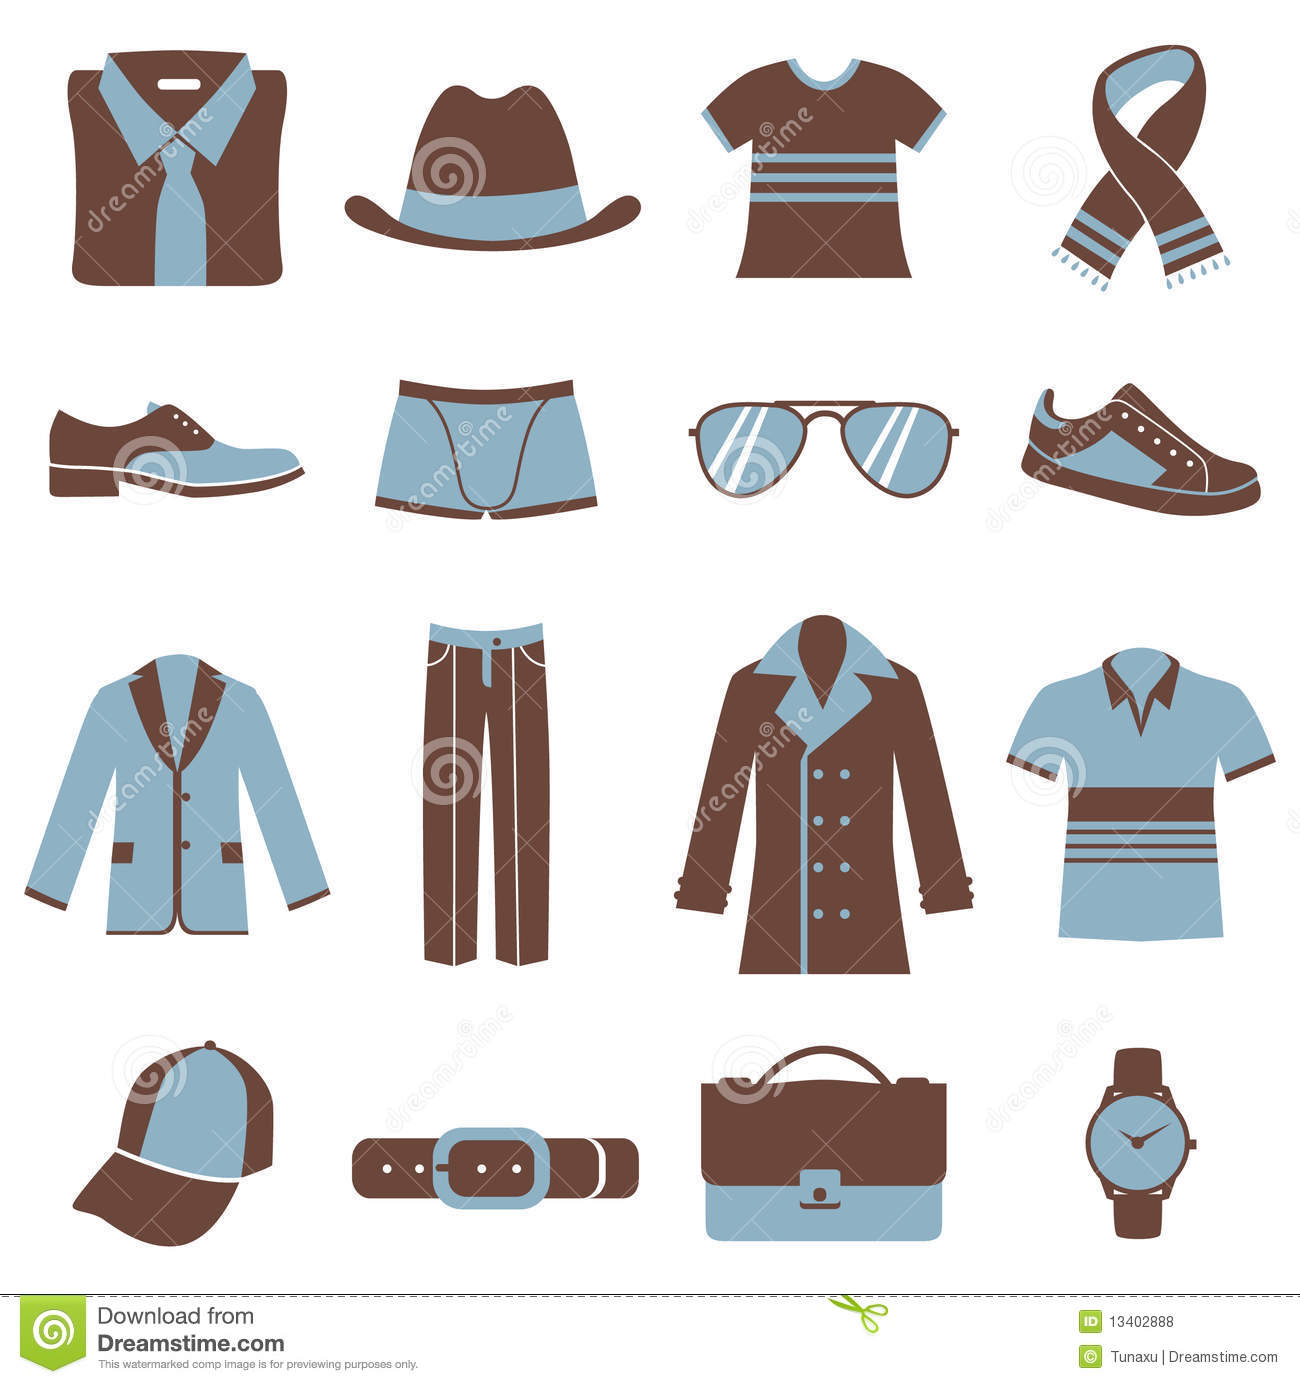 Men Fashion Icons Royalty Free Stock Photos - Image: 13402888